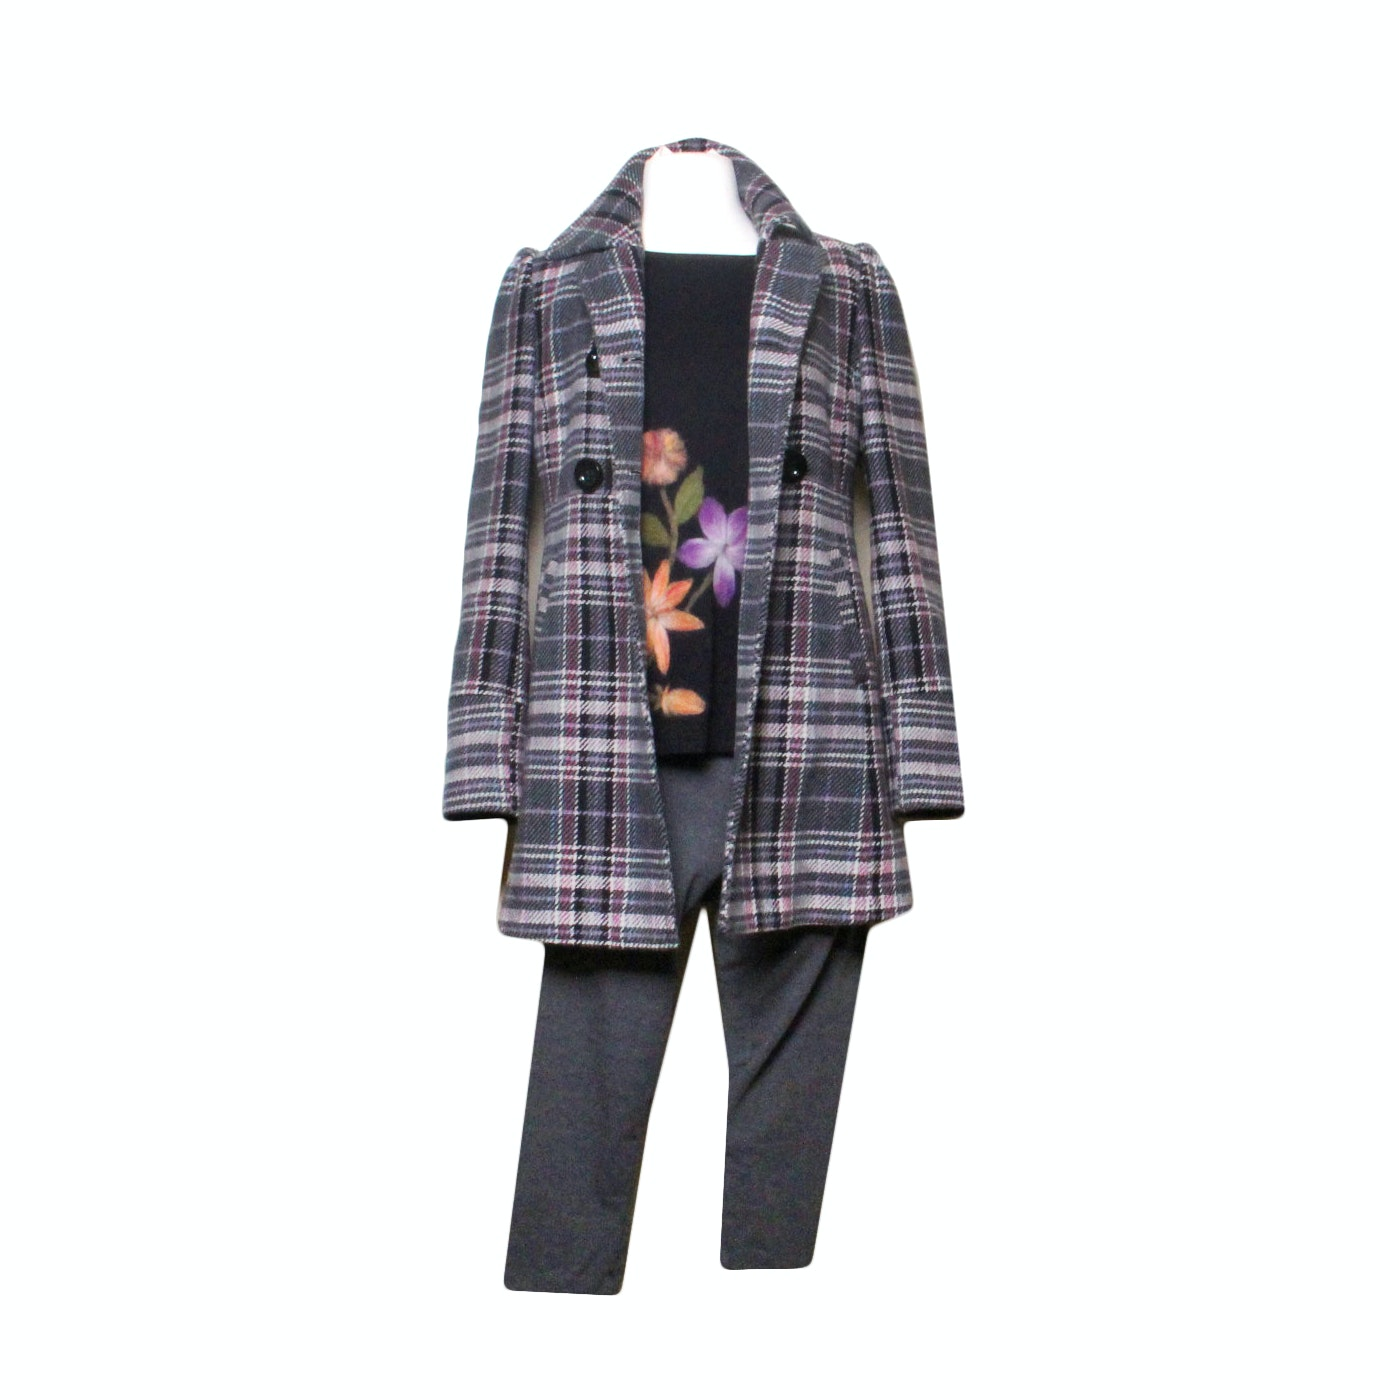 American Rag Cie Wool Coat and Winter Essentials